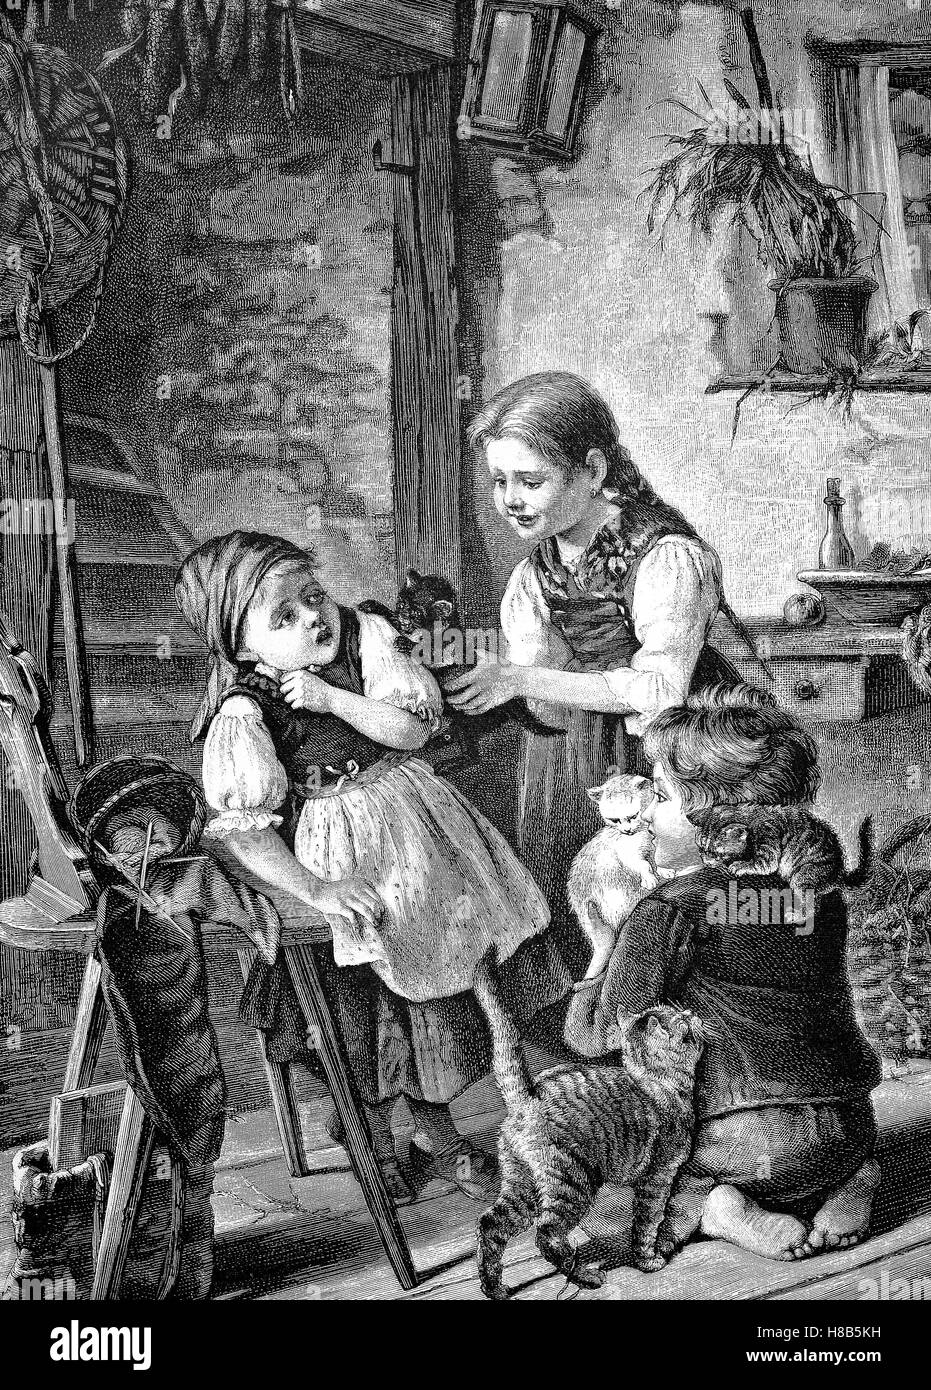 Children playing with kittens, Woodcut from 1892 - Stock Image